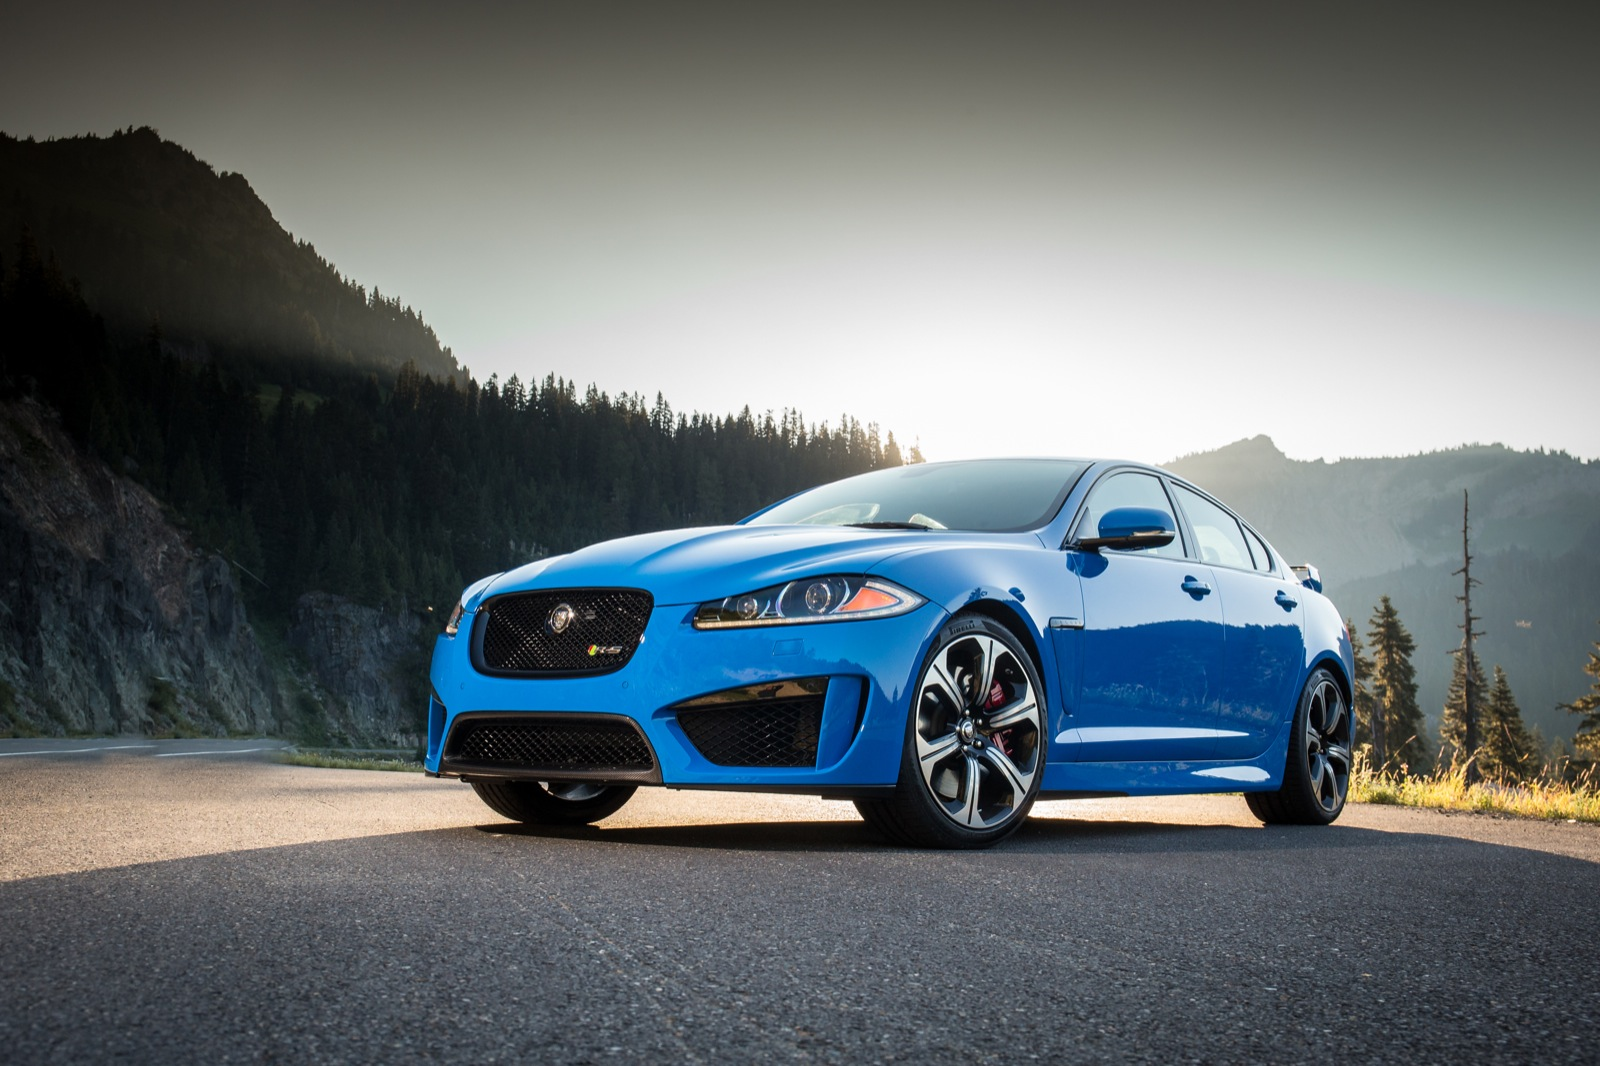 2014 Jaguar Xf Review Ratings Specs Prices And Photos Xfr ...